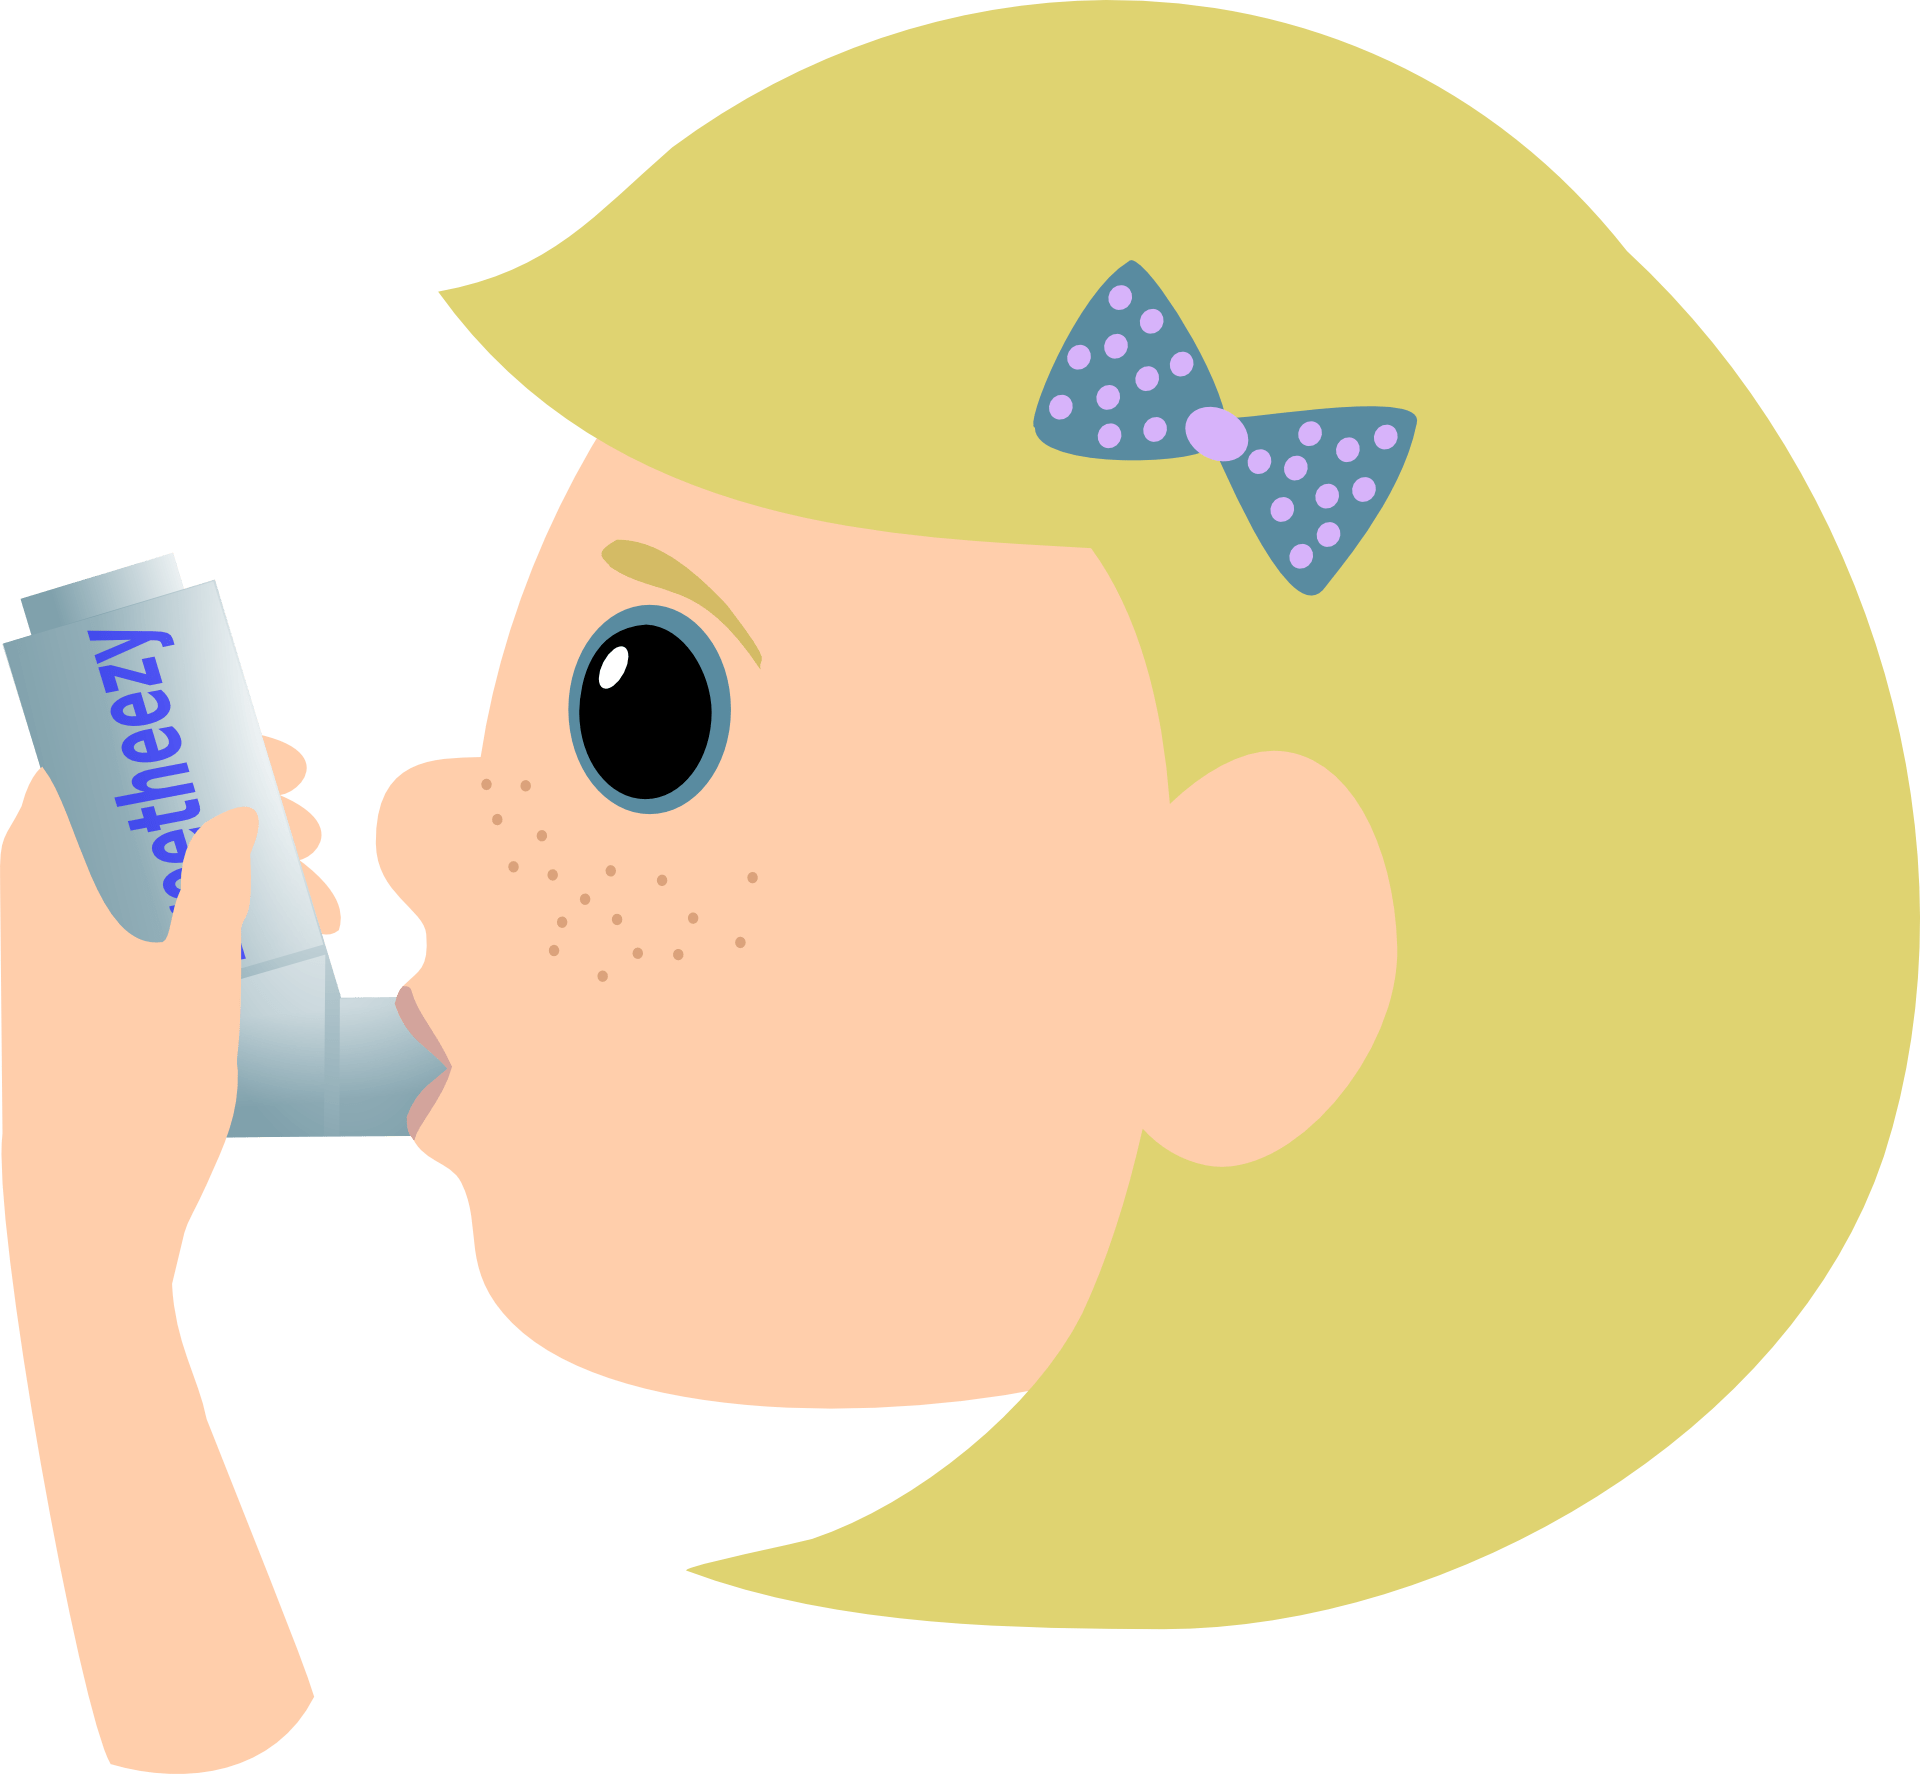 Lungs clipart bad lung. Asthma steroid inhalers learn